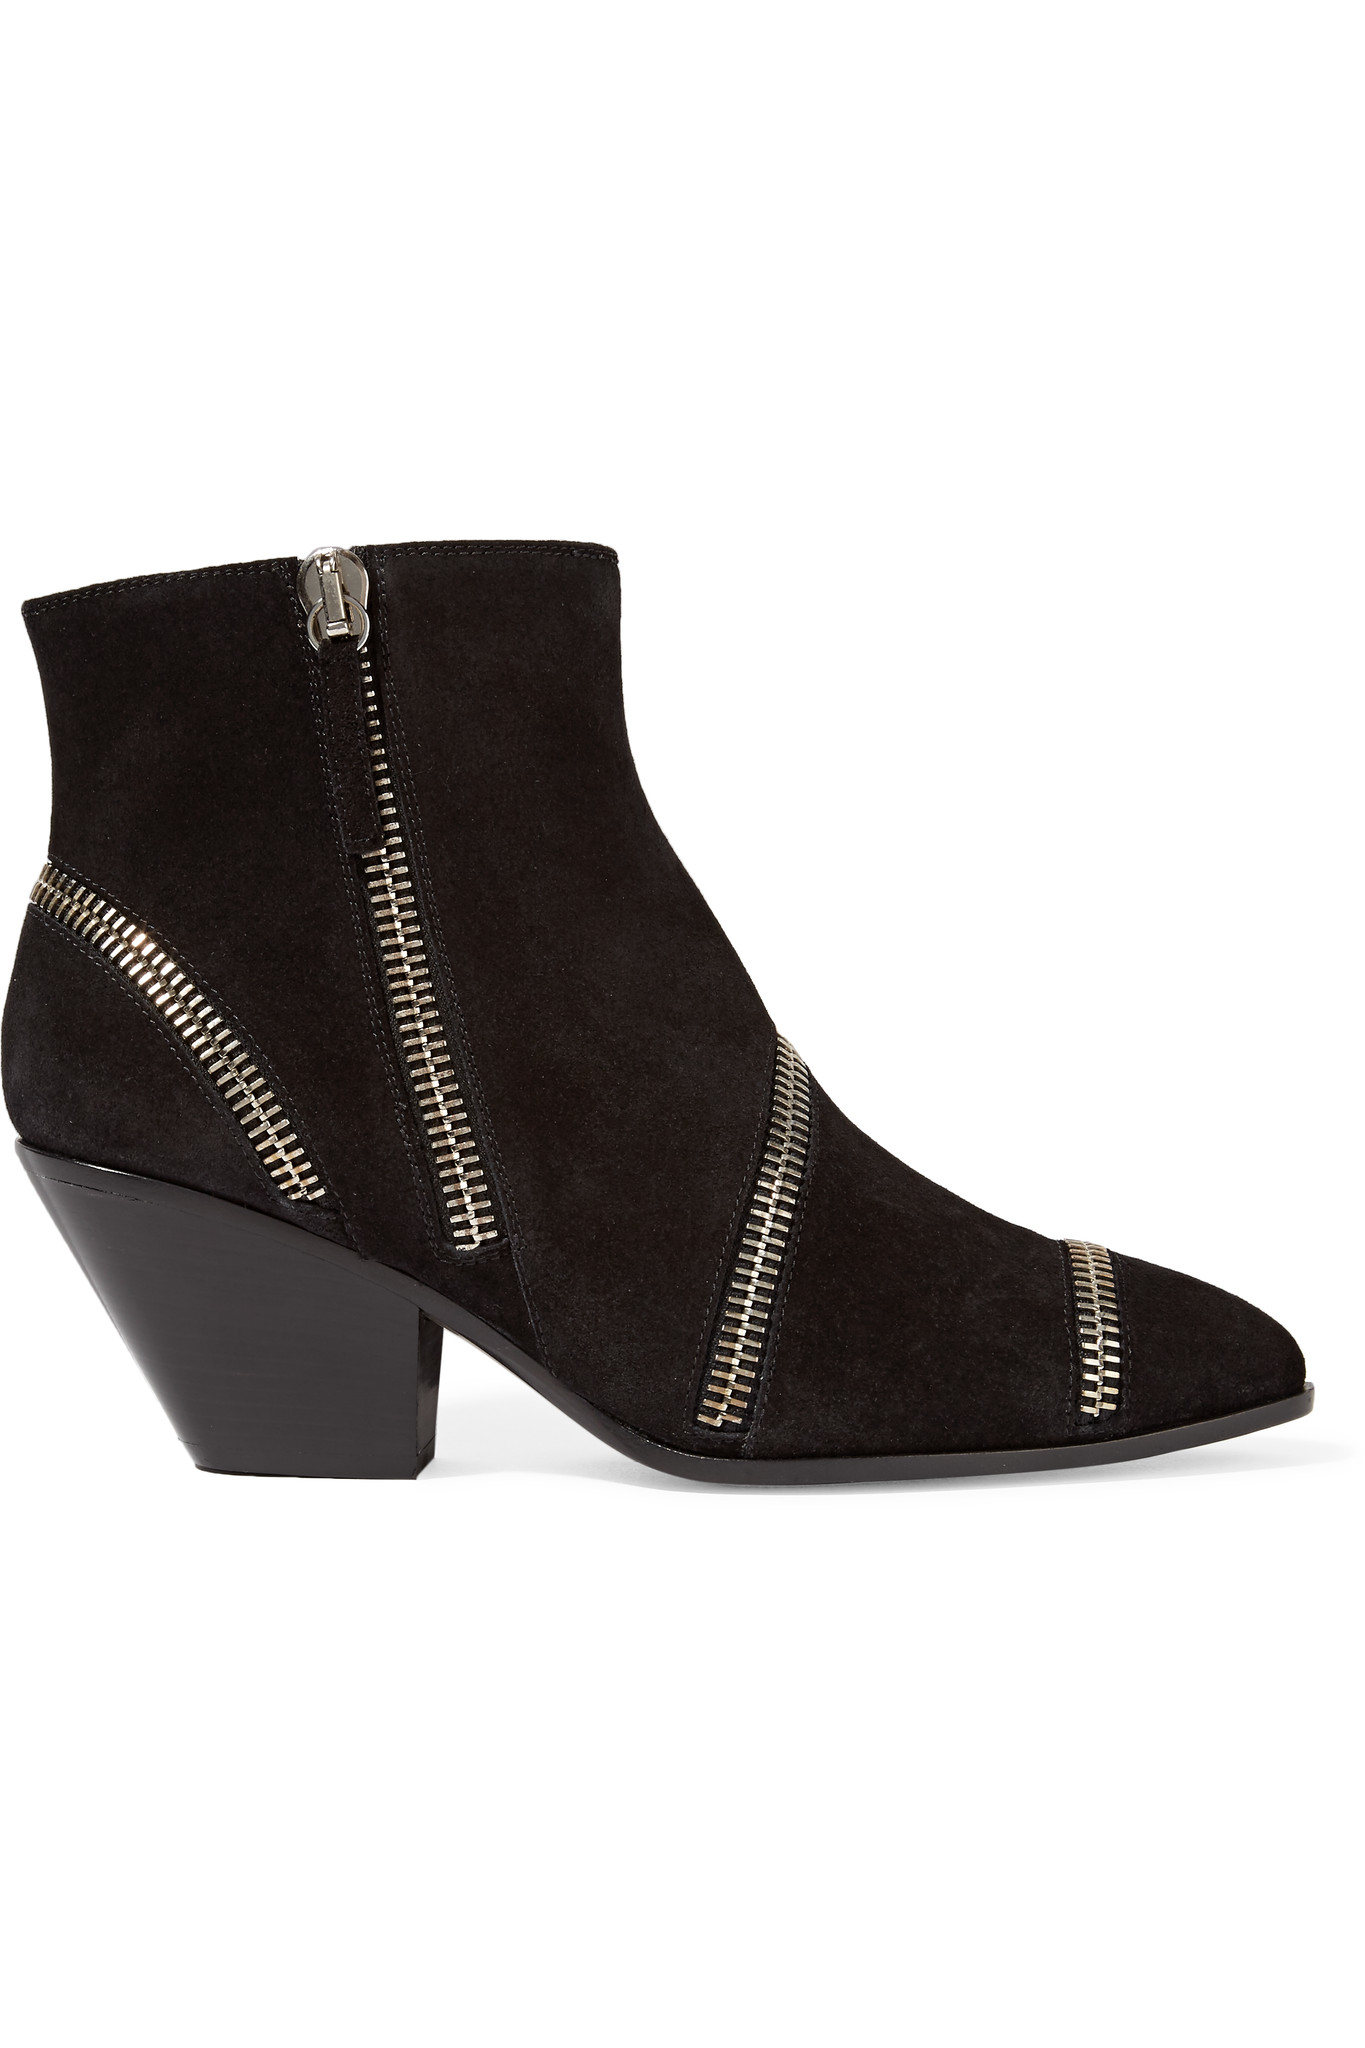 giuseppe zanotti zip suede ankle boots in black lyst